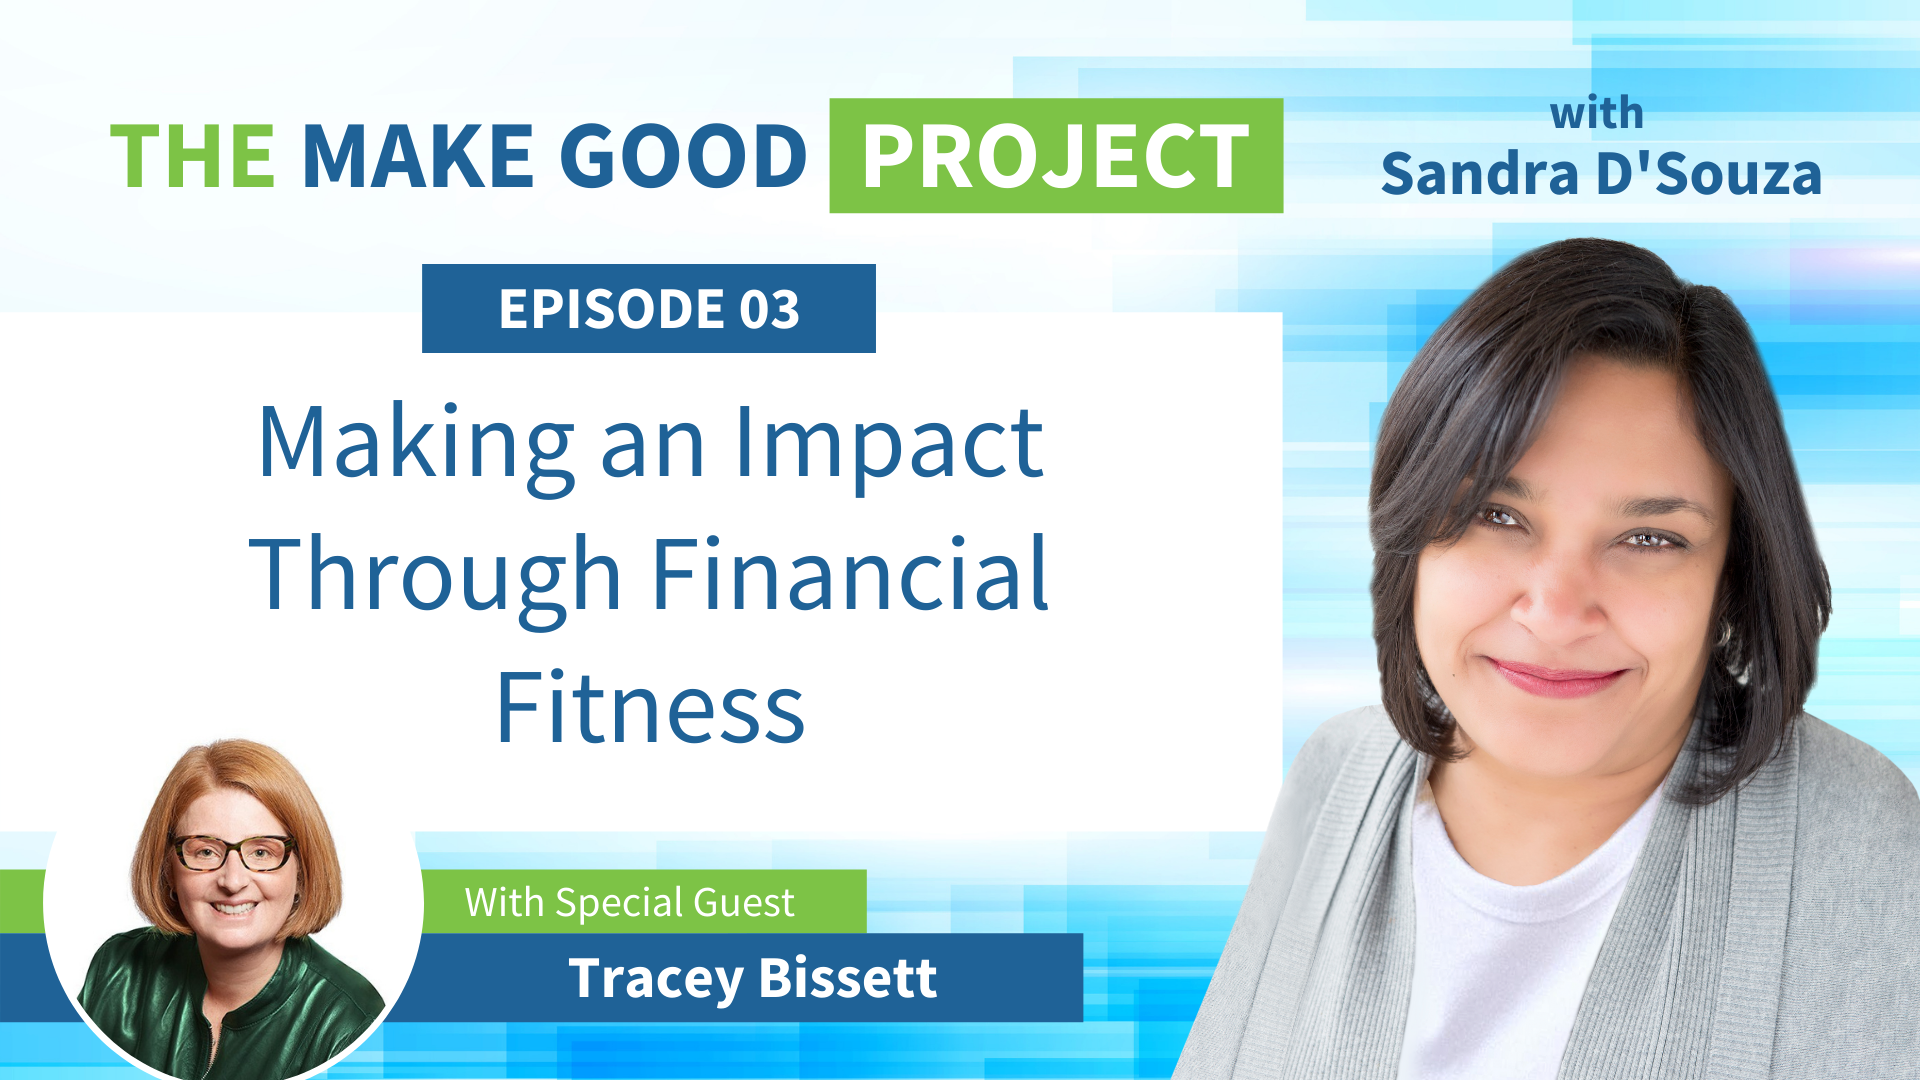 EP #03: Making an Impact Through Financial Fitness with Tracey Bissett